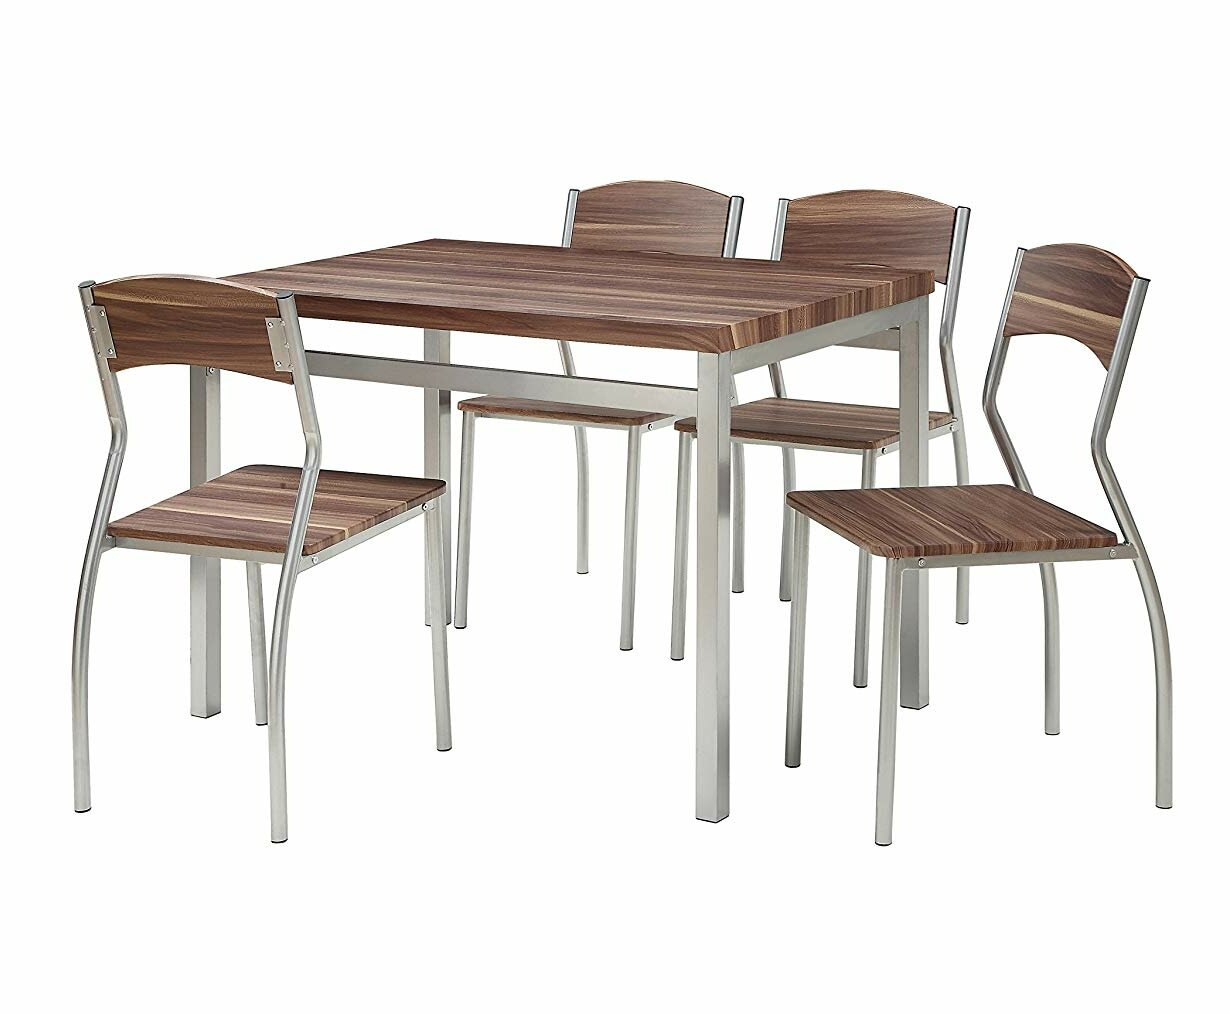 Kaelin 5 Piece Dining Set With Regard To Latest Turnalar 5 Piece Dining Sets (View 5 of 20)